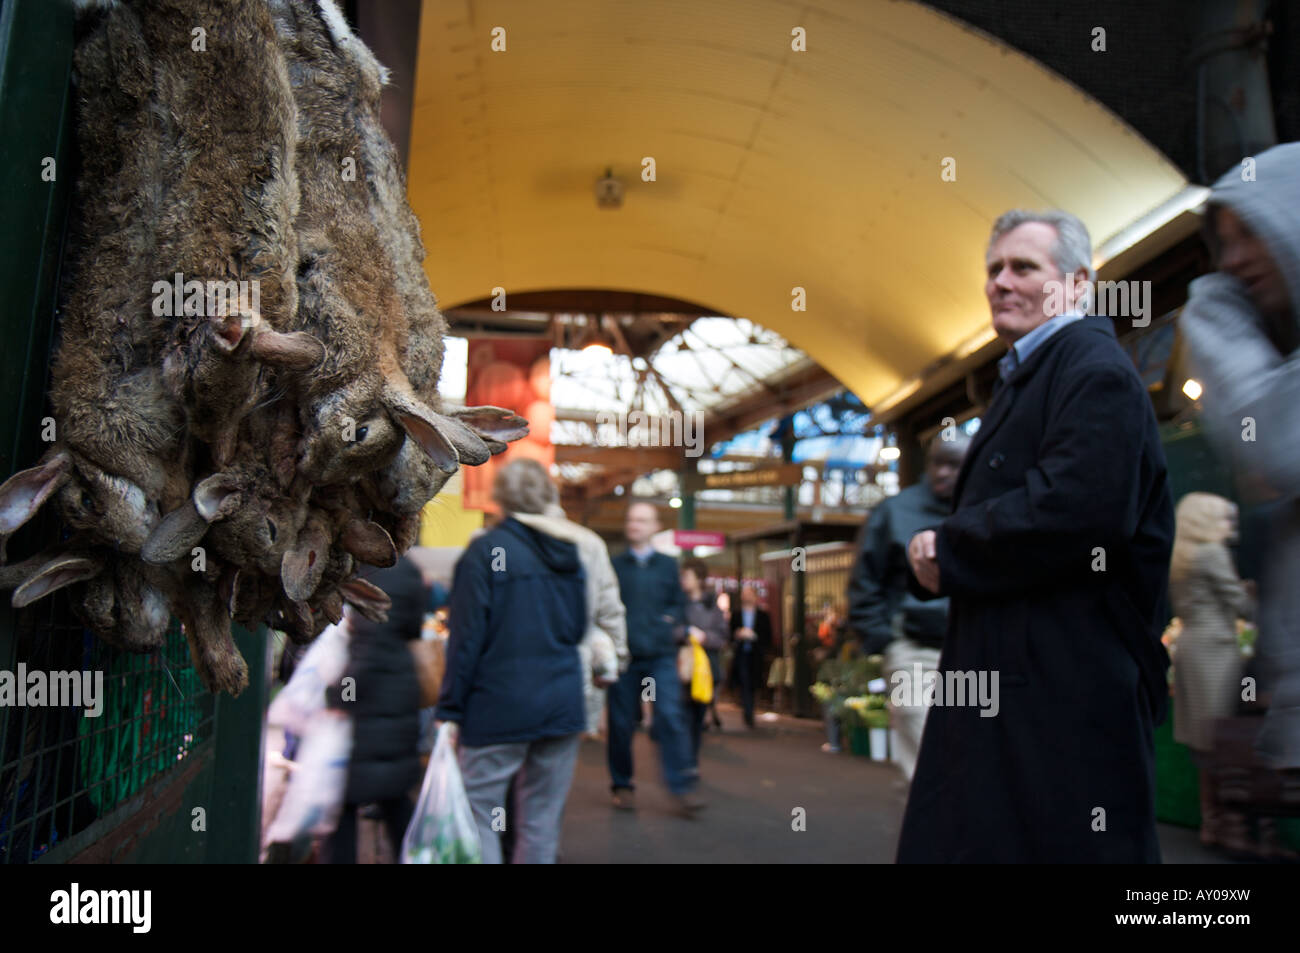 Hares strung up for sale in London's Borough market whilst a man looks on in the background Stock Photo